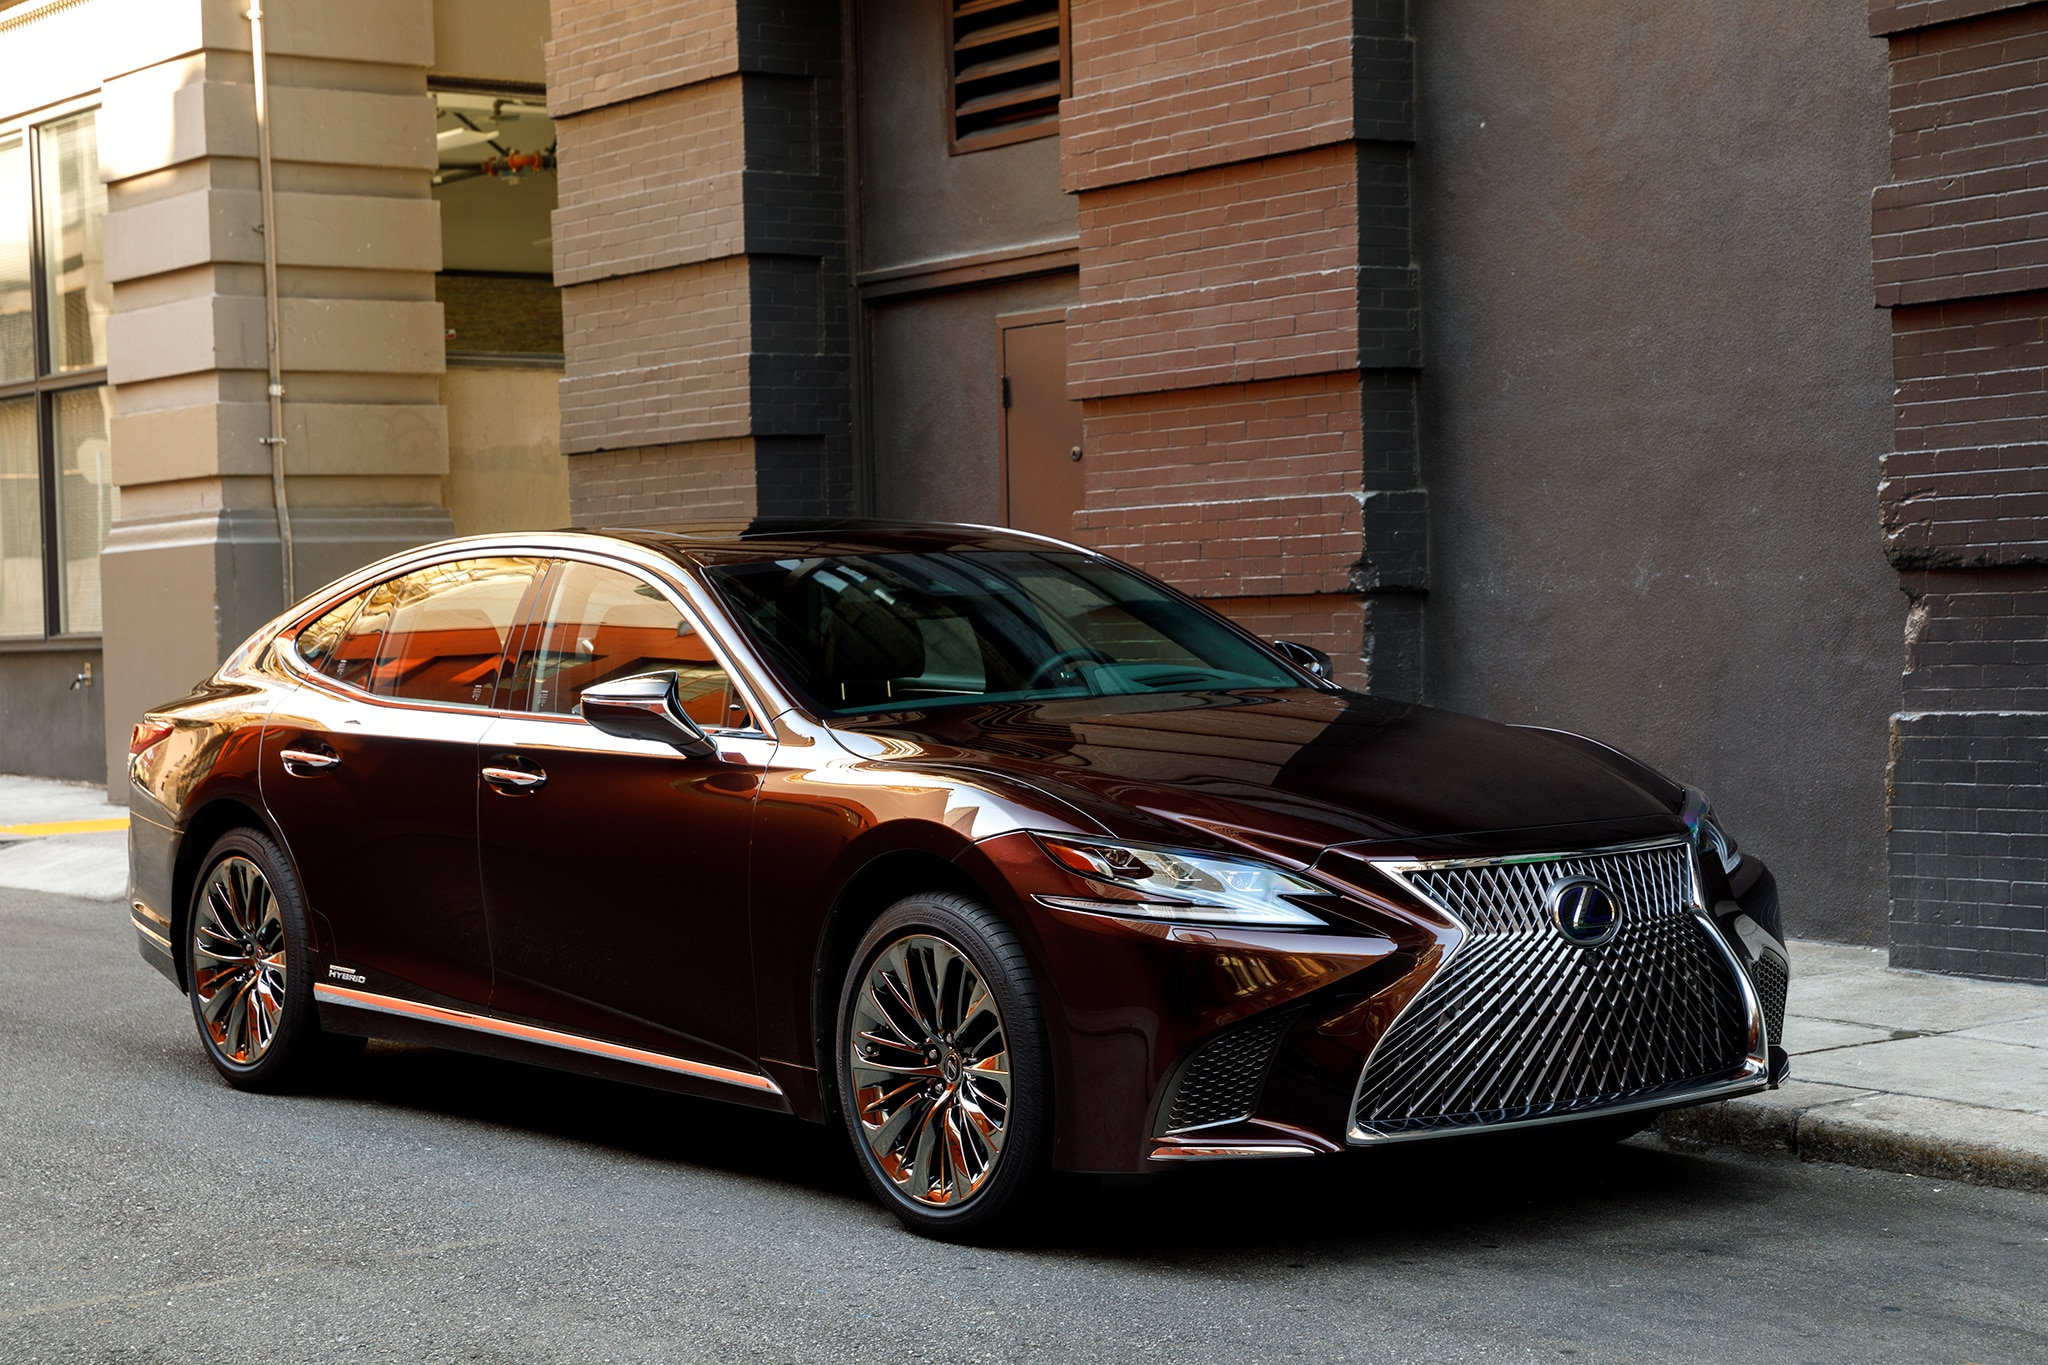 2018 lexus ls 500 f sport adds visual aggression handling pack to halo sedan automobile magazine. Black Bedroom Furniture Sets. Home Design Ideas